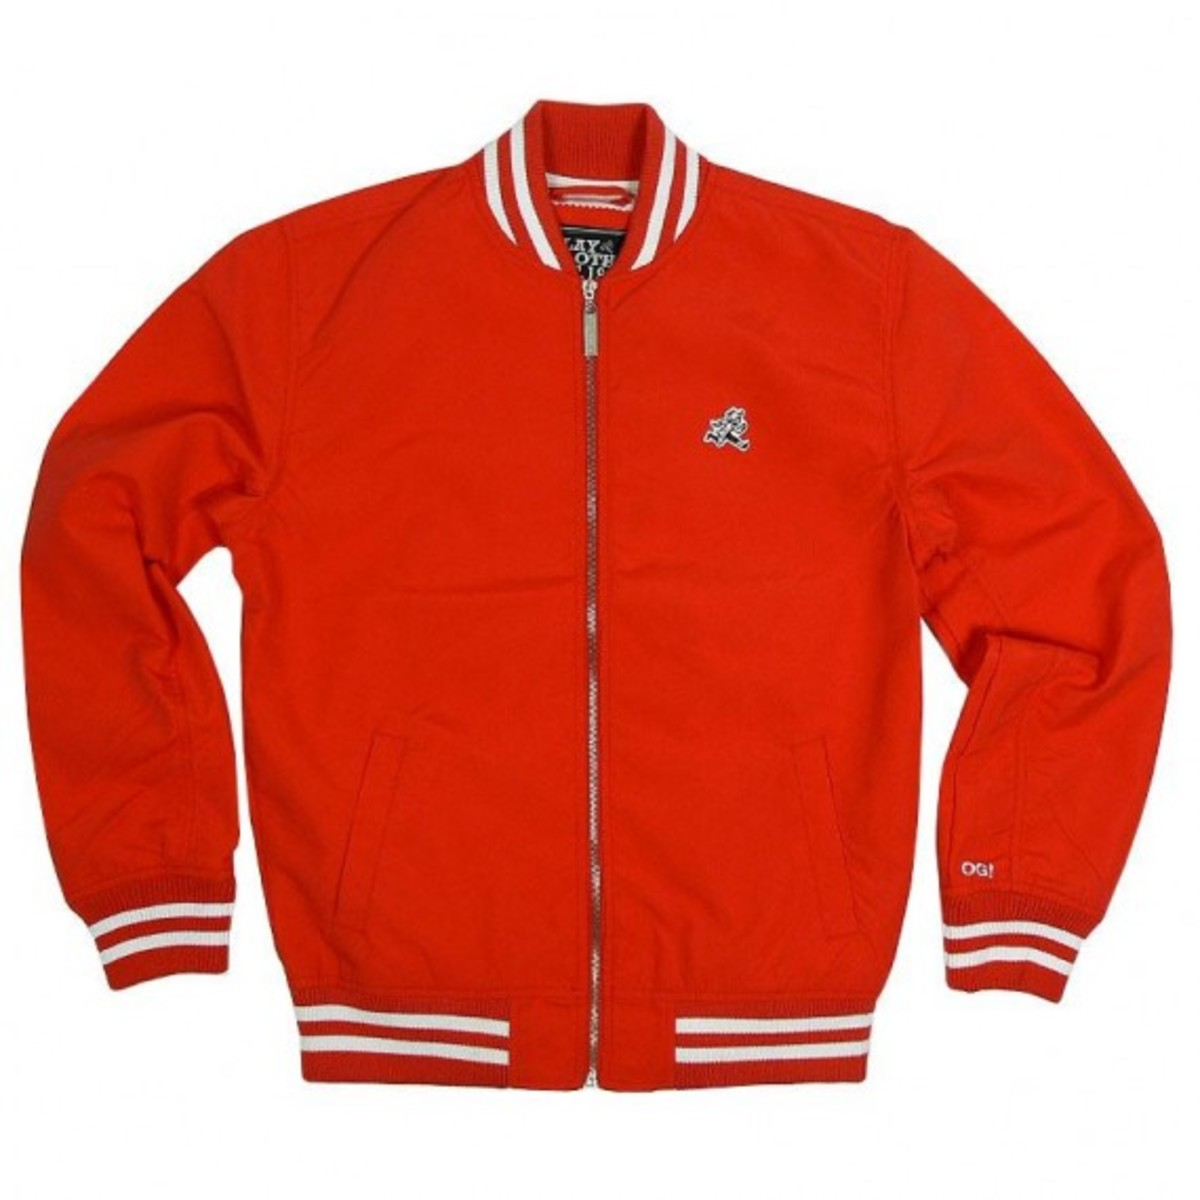 play-cloths-fall-2009-youre-it-varsity-jacket-1